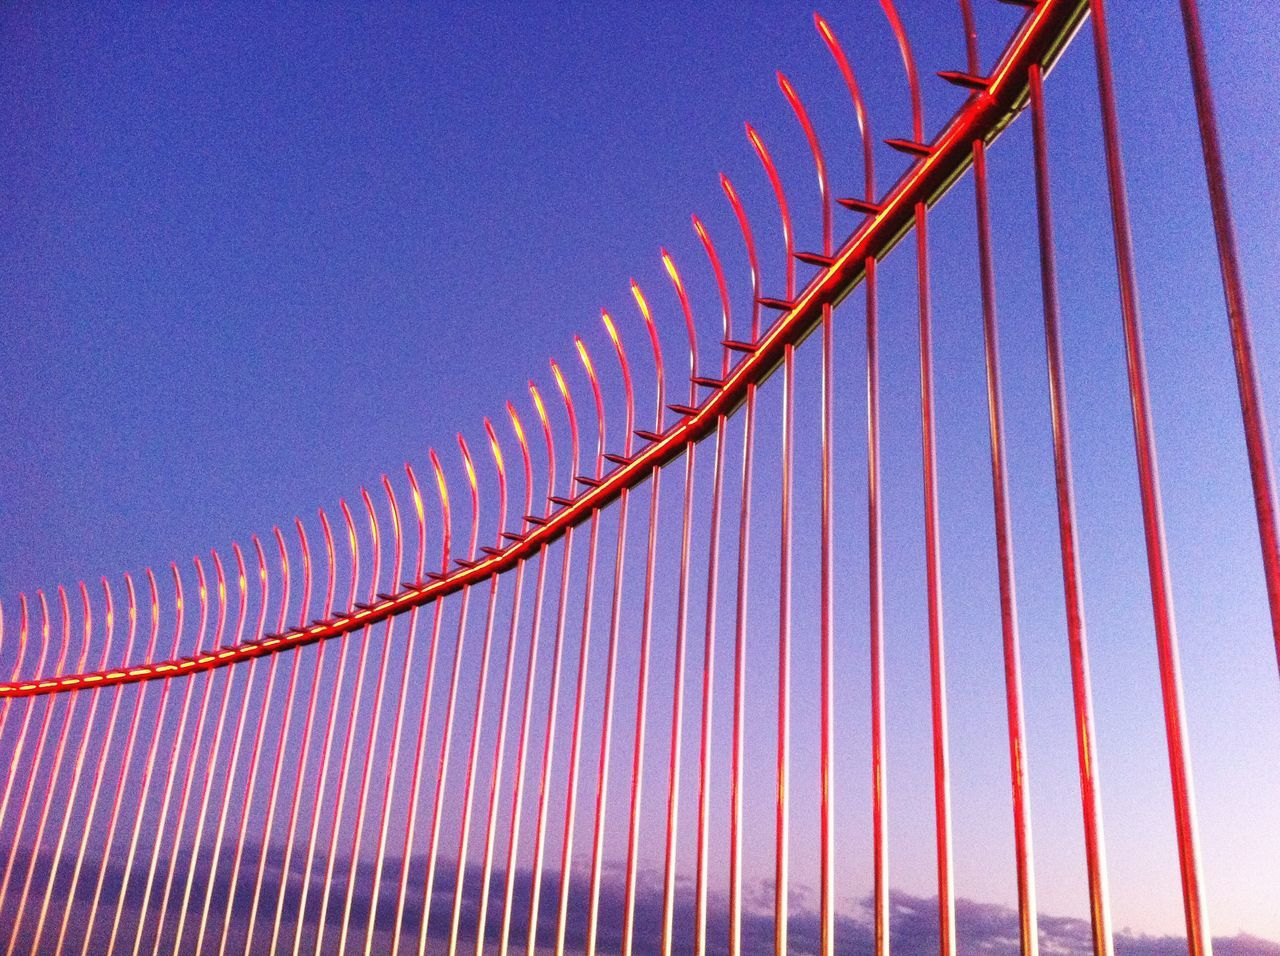 Low Angle View Of Metal Fence Against Sky At Dusk